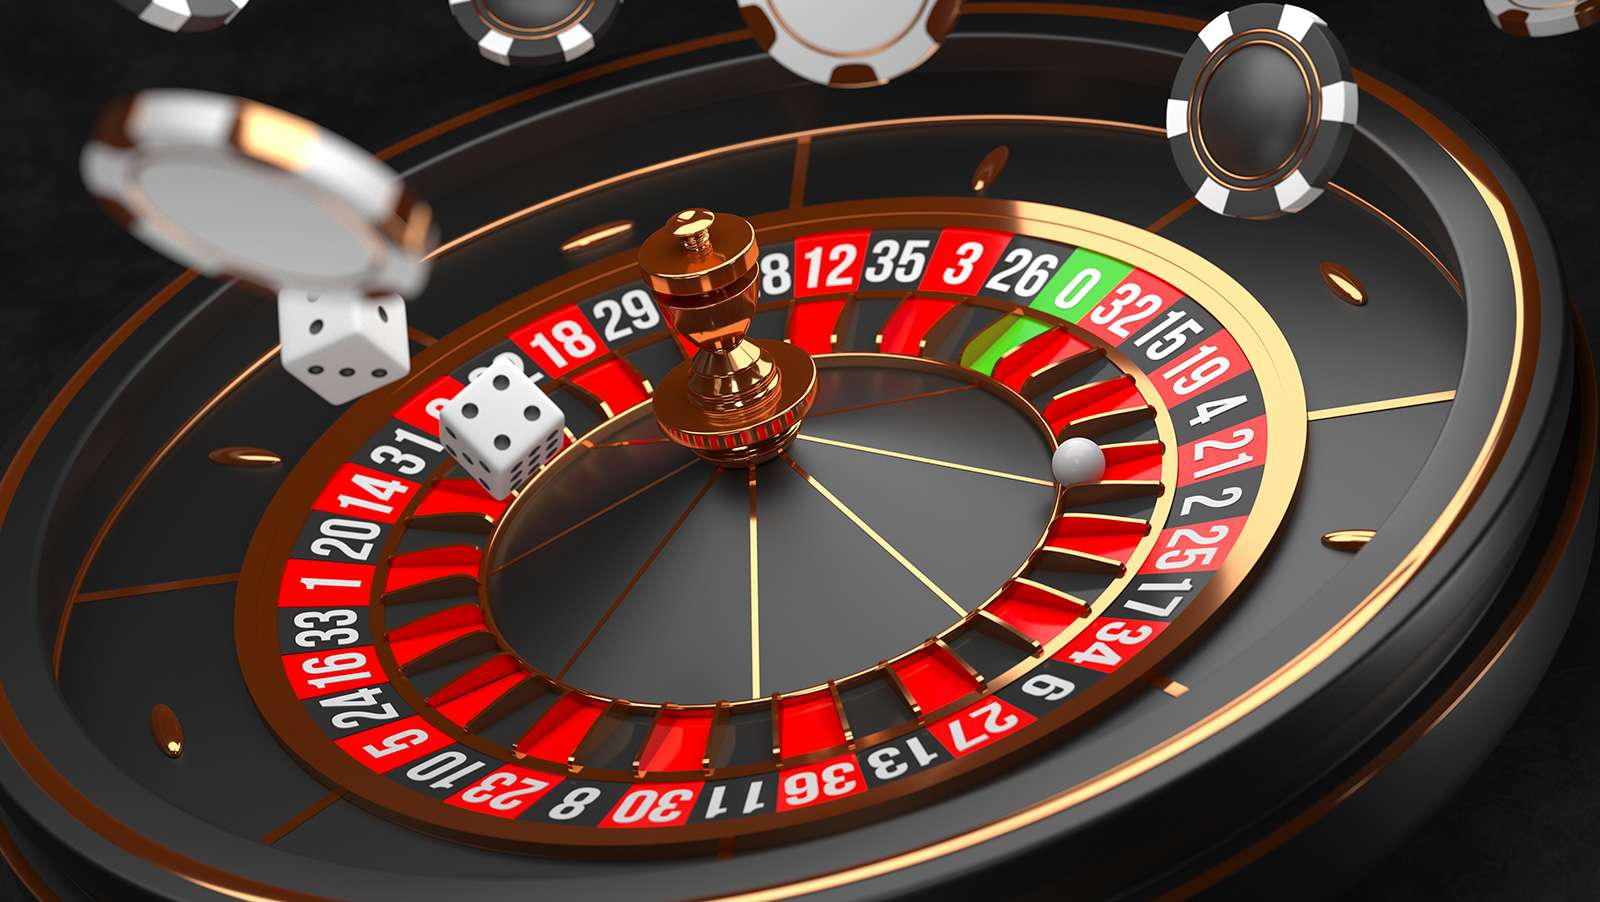 Roulette PayPal ᐈ Online Roulette Real Money PayPal